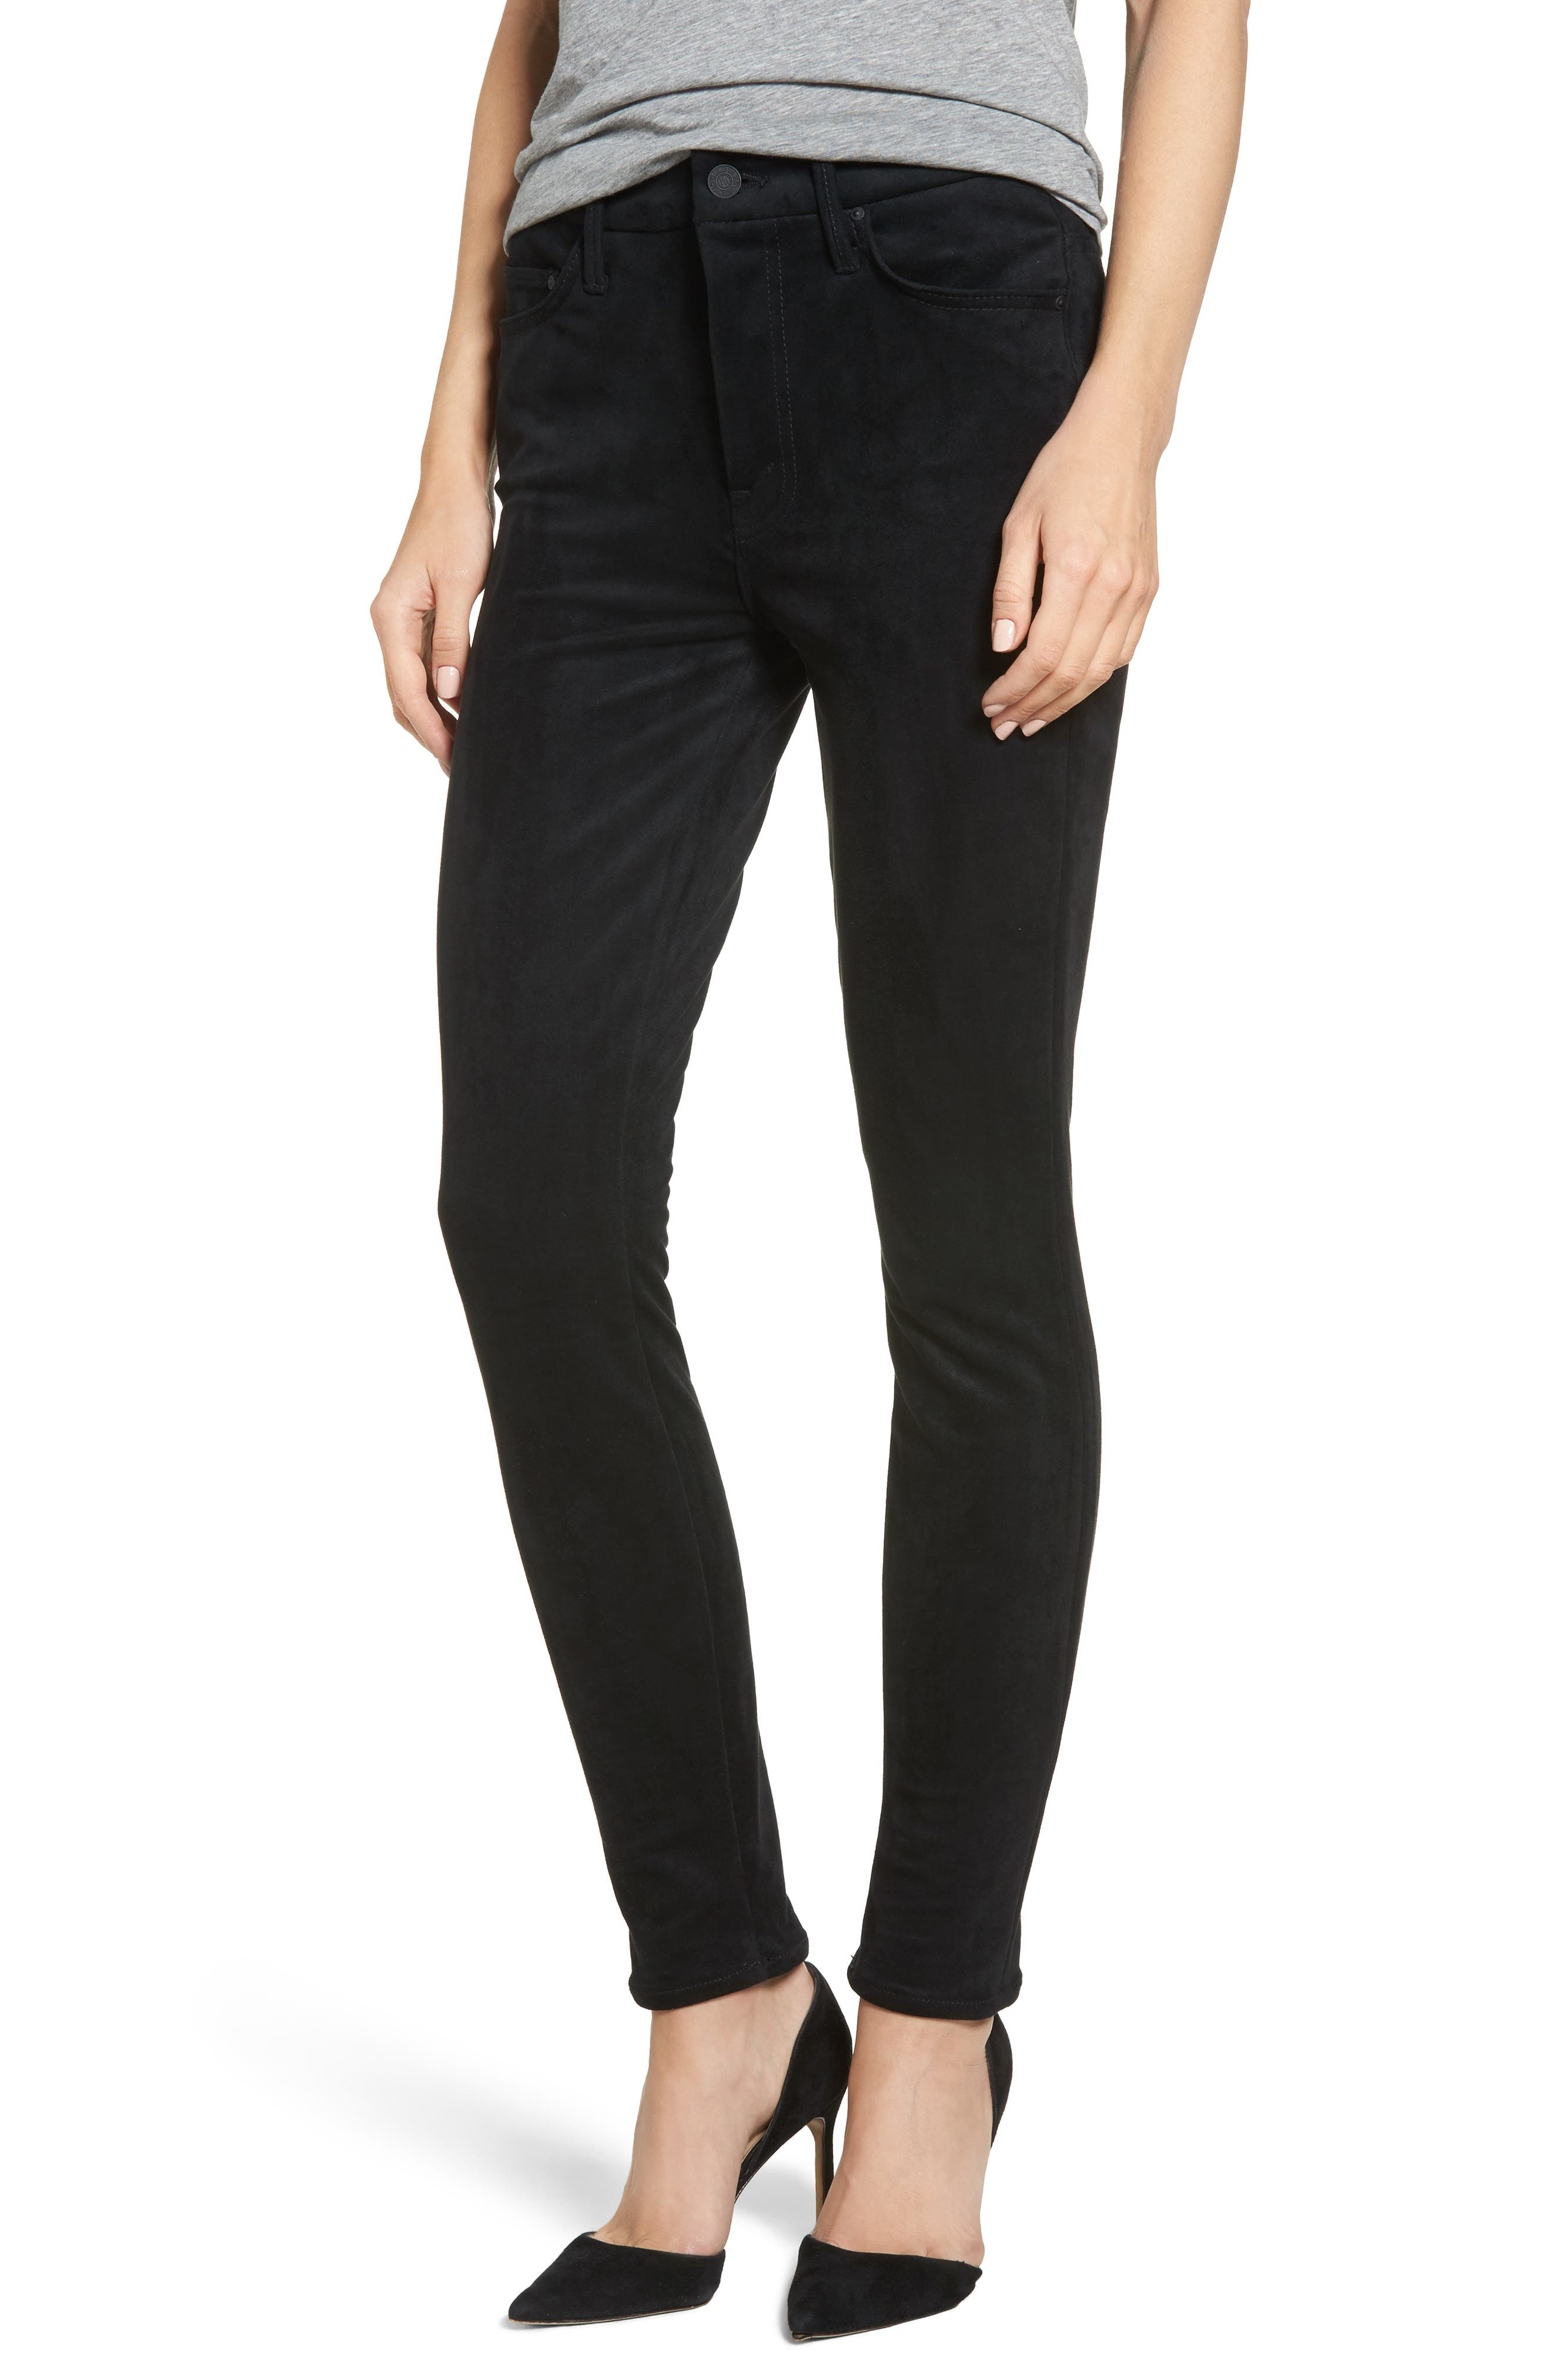 Main Image - MOTHER The Looker High Waist Ankle Skinny Jeans (Tricks of the Trade)